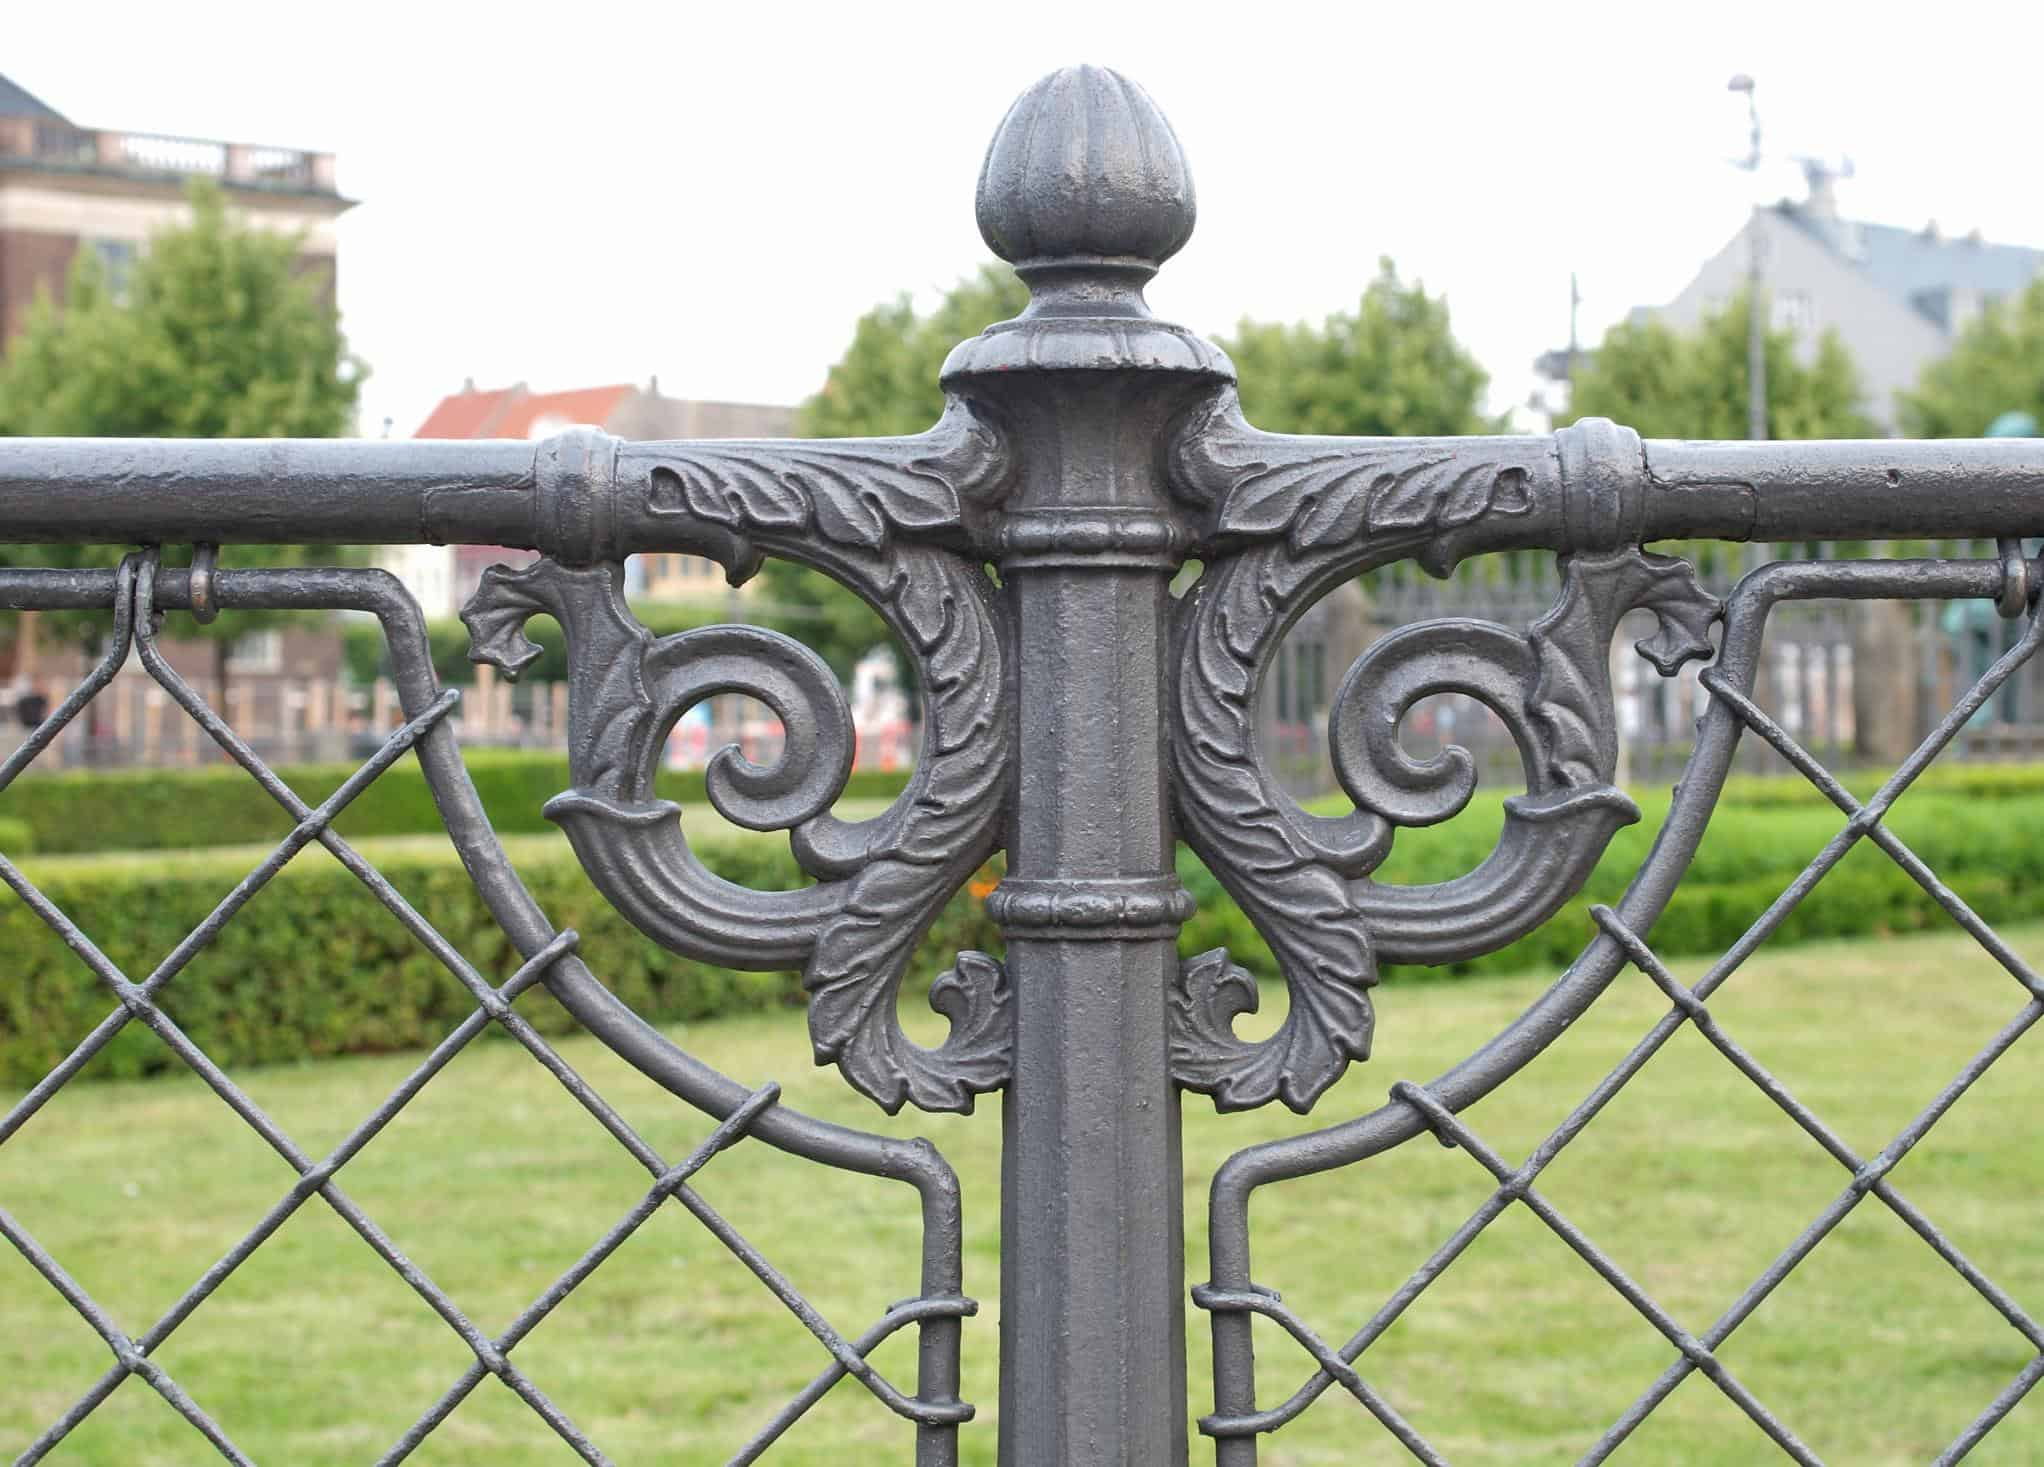 Cape Coral Gates and Fences - Wrought Iron Fencing and Gates 2